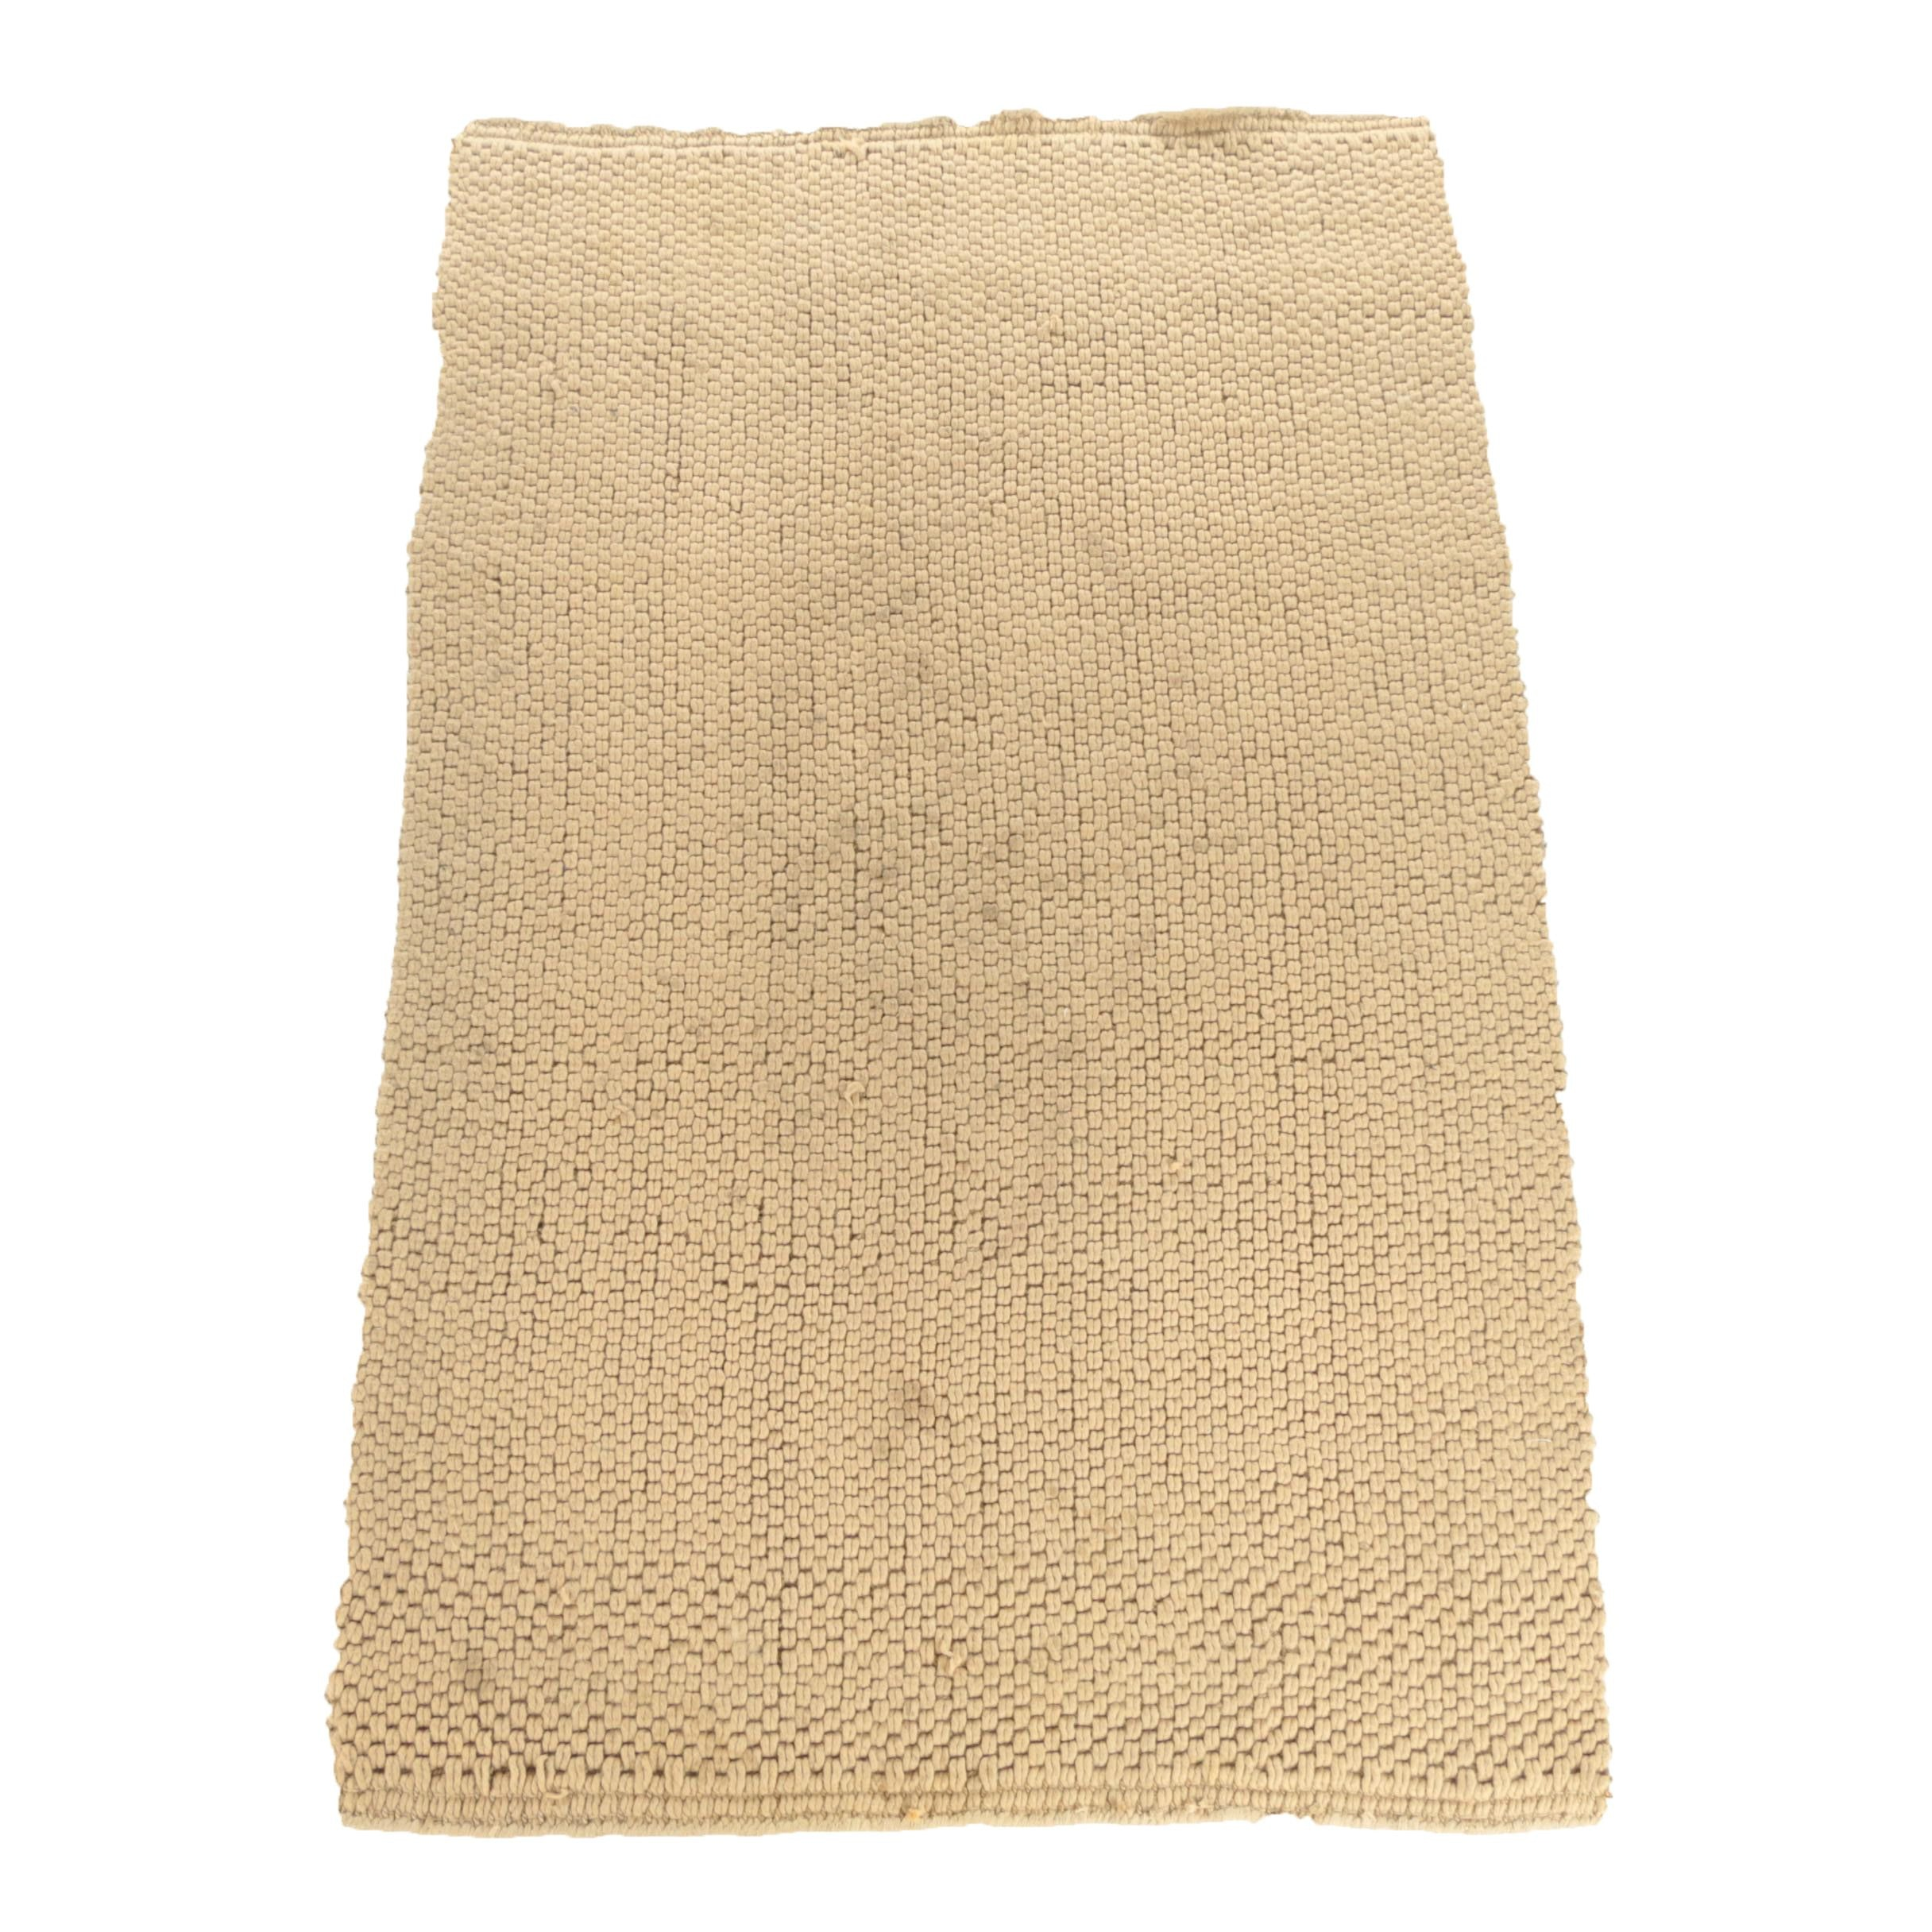 Handwoven Indian Jute and Wool Area Rug for West Elm